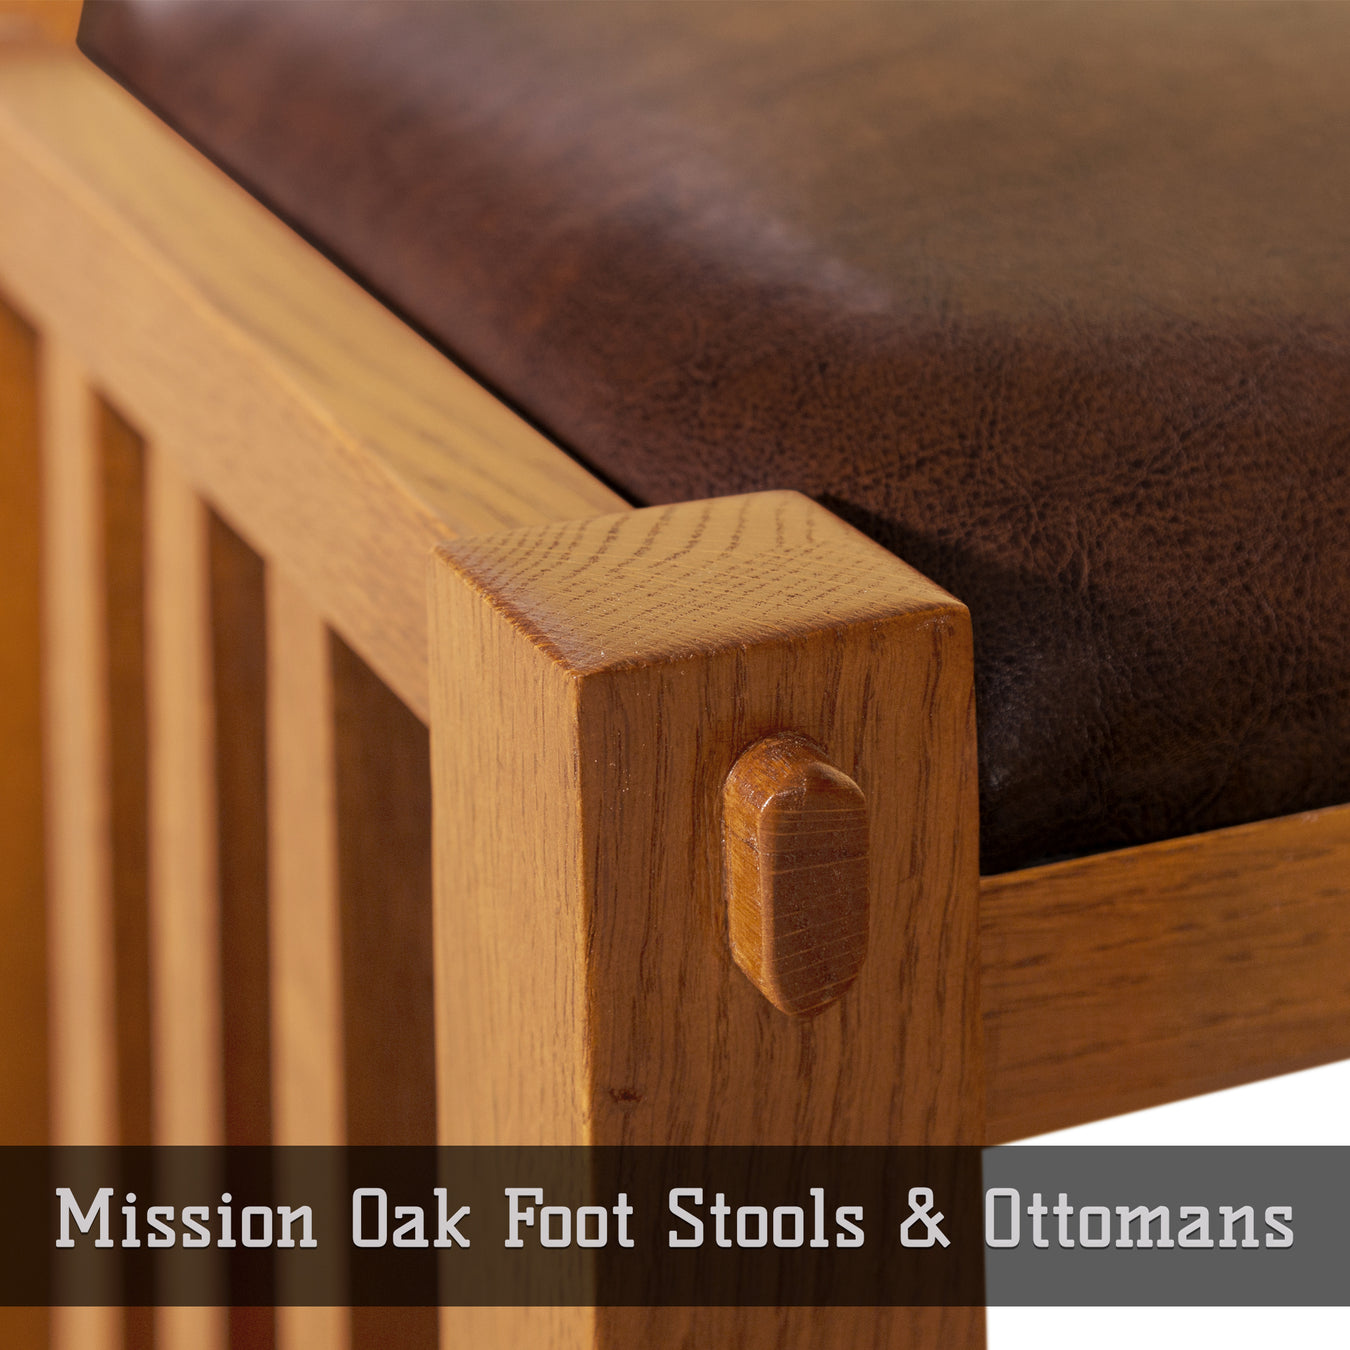 Mission Oak Foot Stools & Ottomans